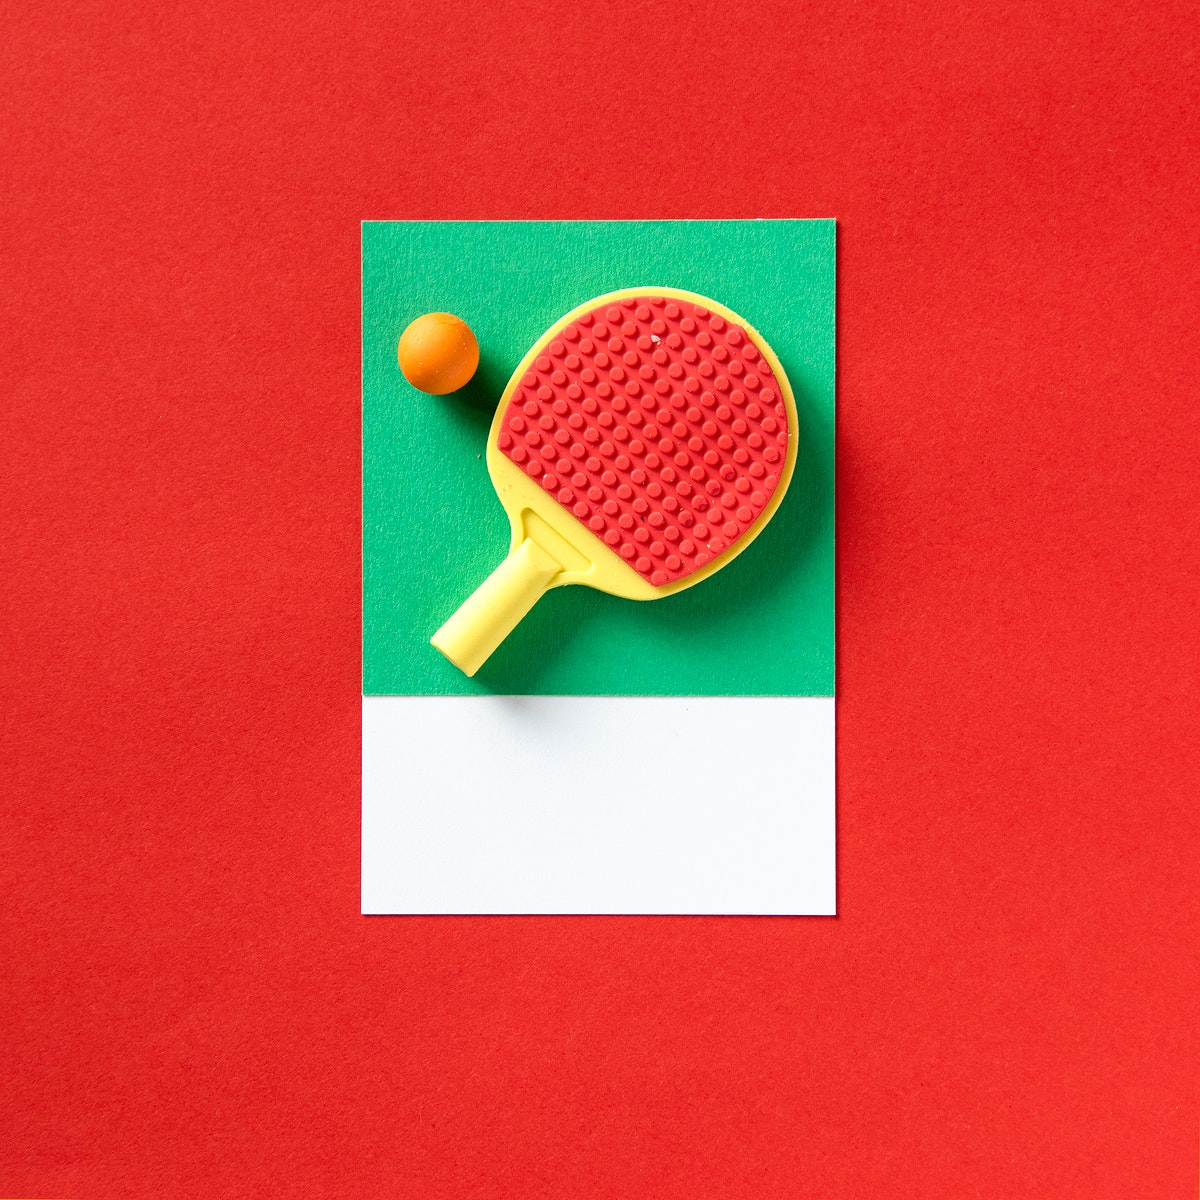 Ping pong sport racket and ball